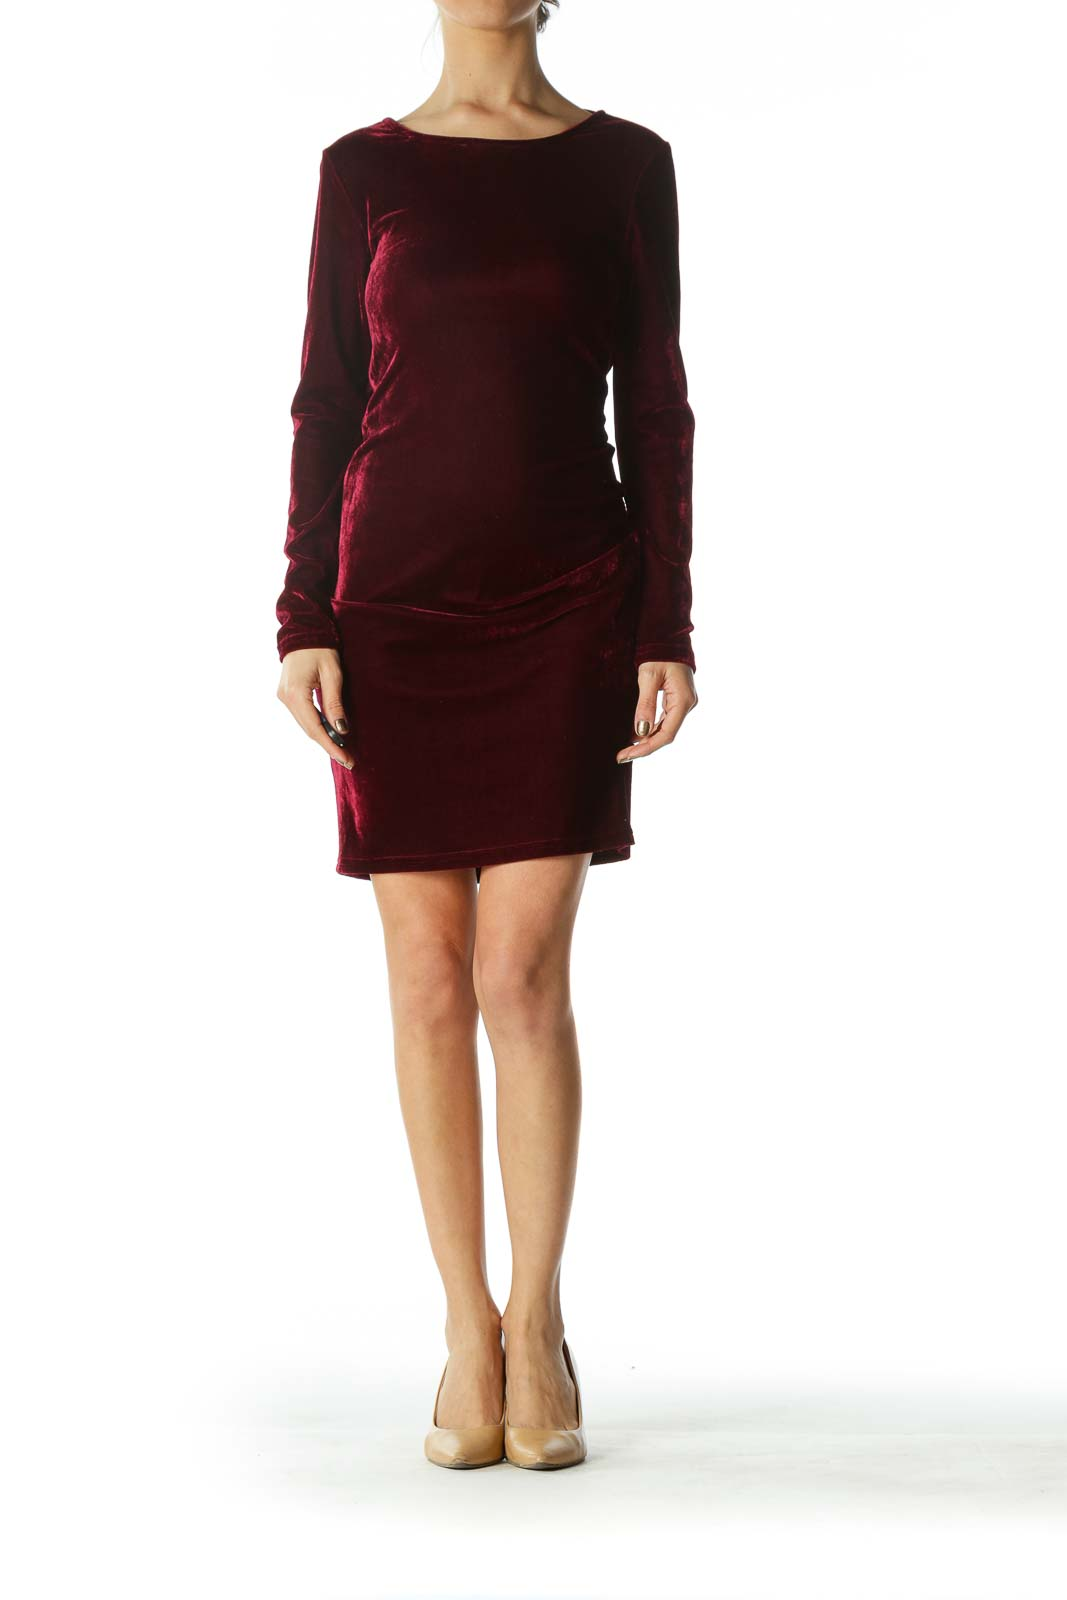 Burgundy Long Sleeve Dress with Choker